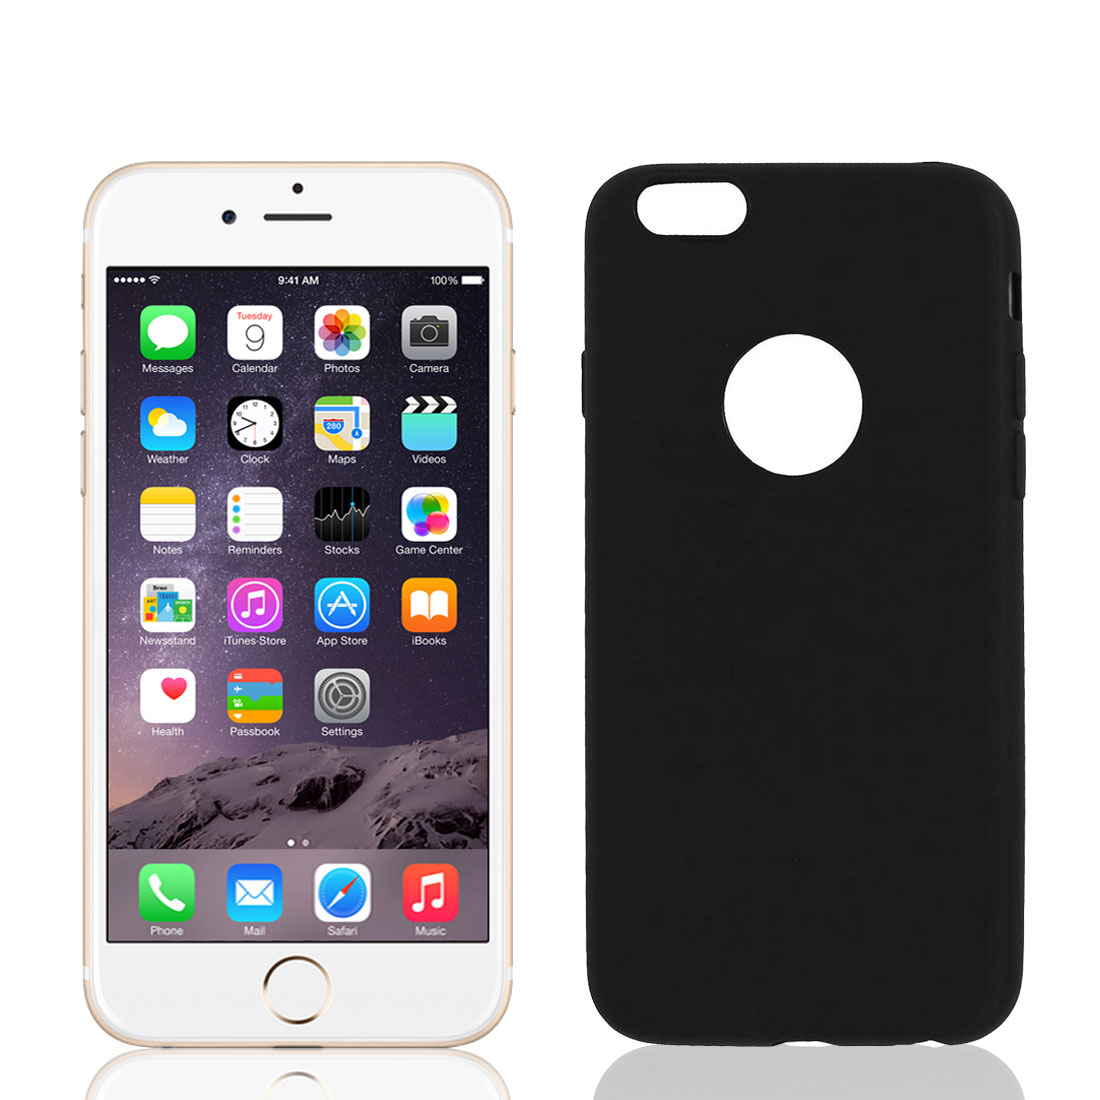 Soft Silicone Case Skin Bumper Cover Protector Black for iPhone 6 4.7""